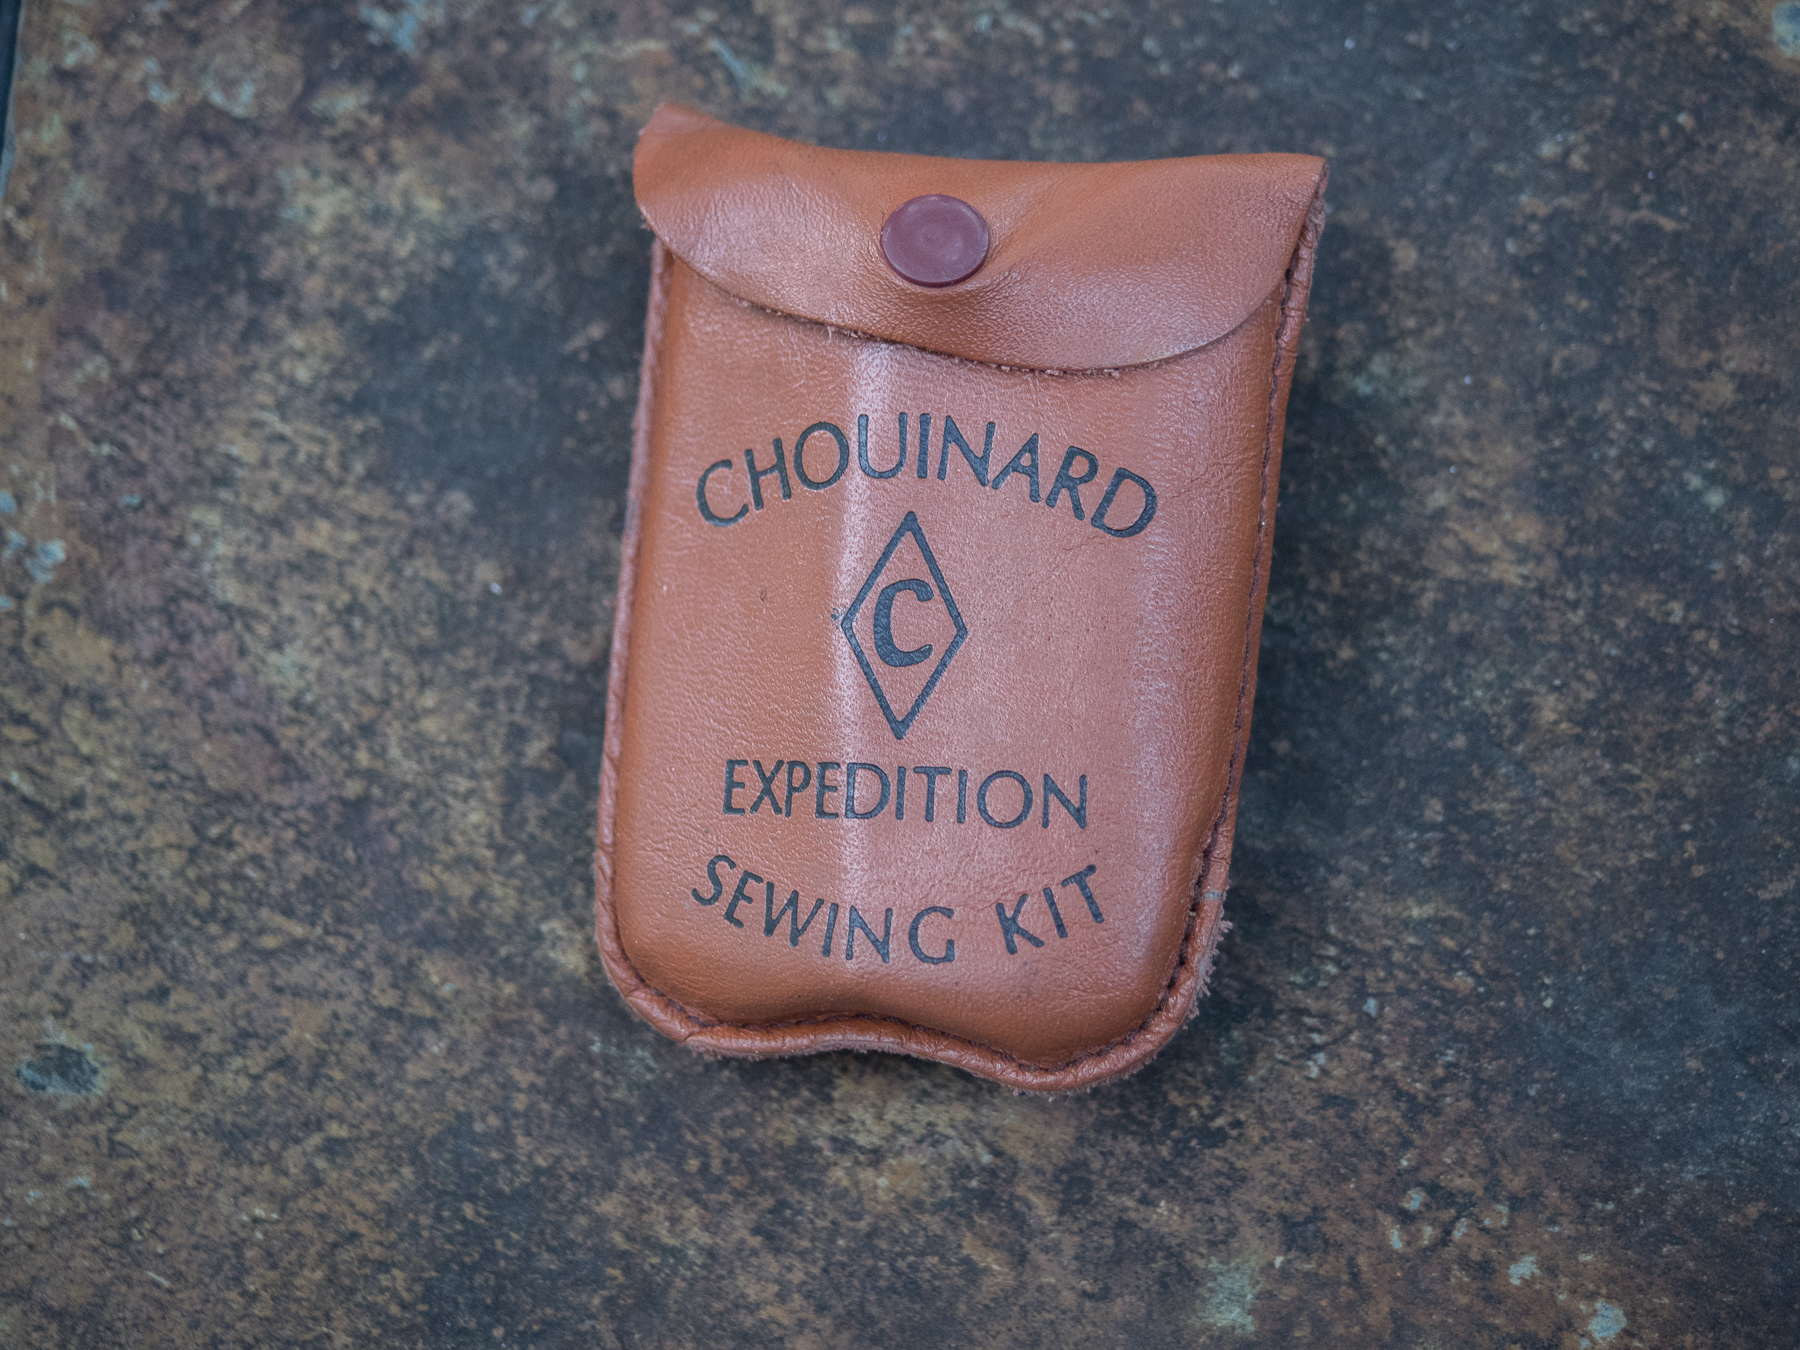 This Chouinard Expedition Sewing Kit holds needles, thread, sewing awl for sewing heavy pack fabrics, repair tape, and other necessities.